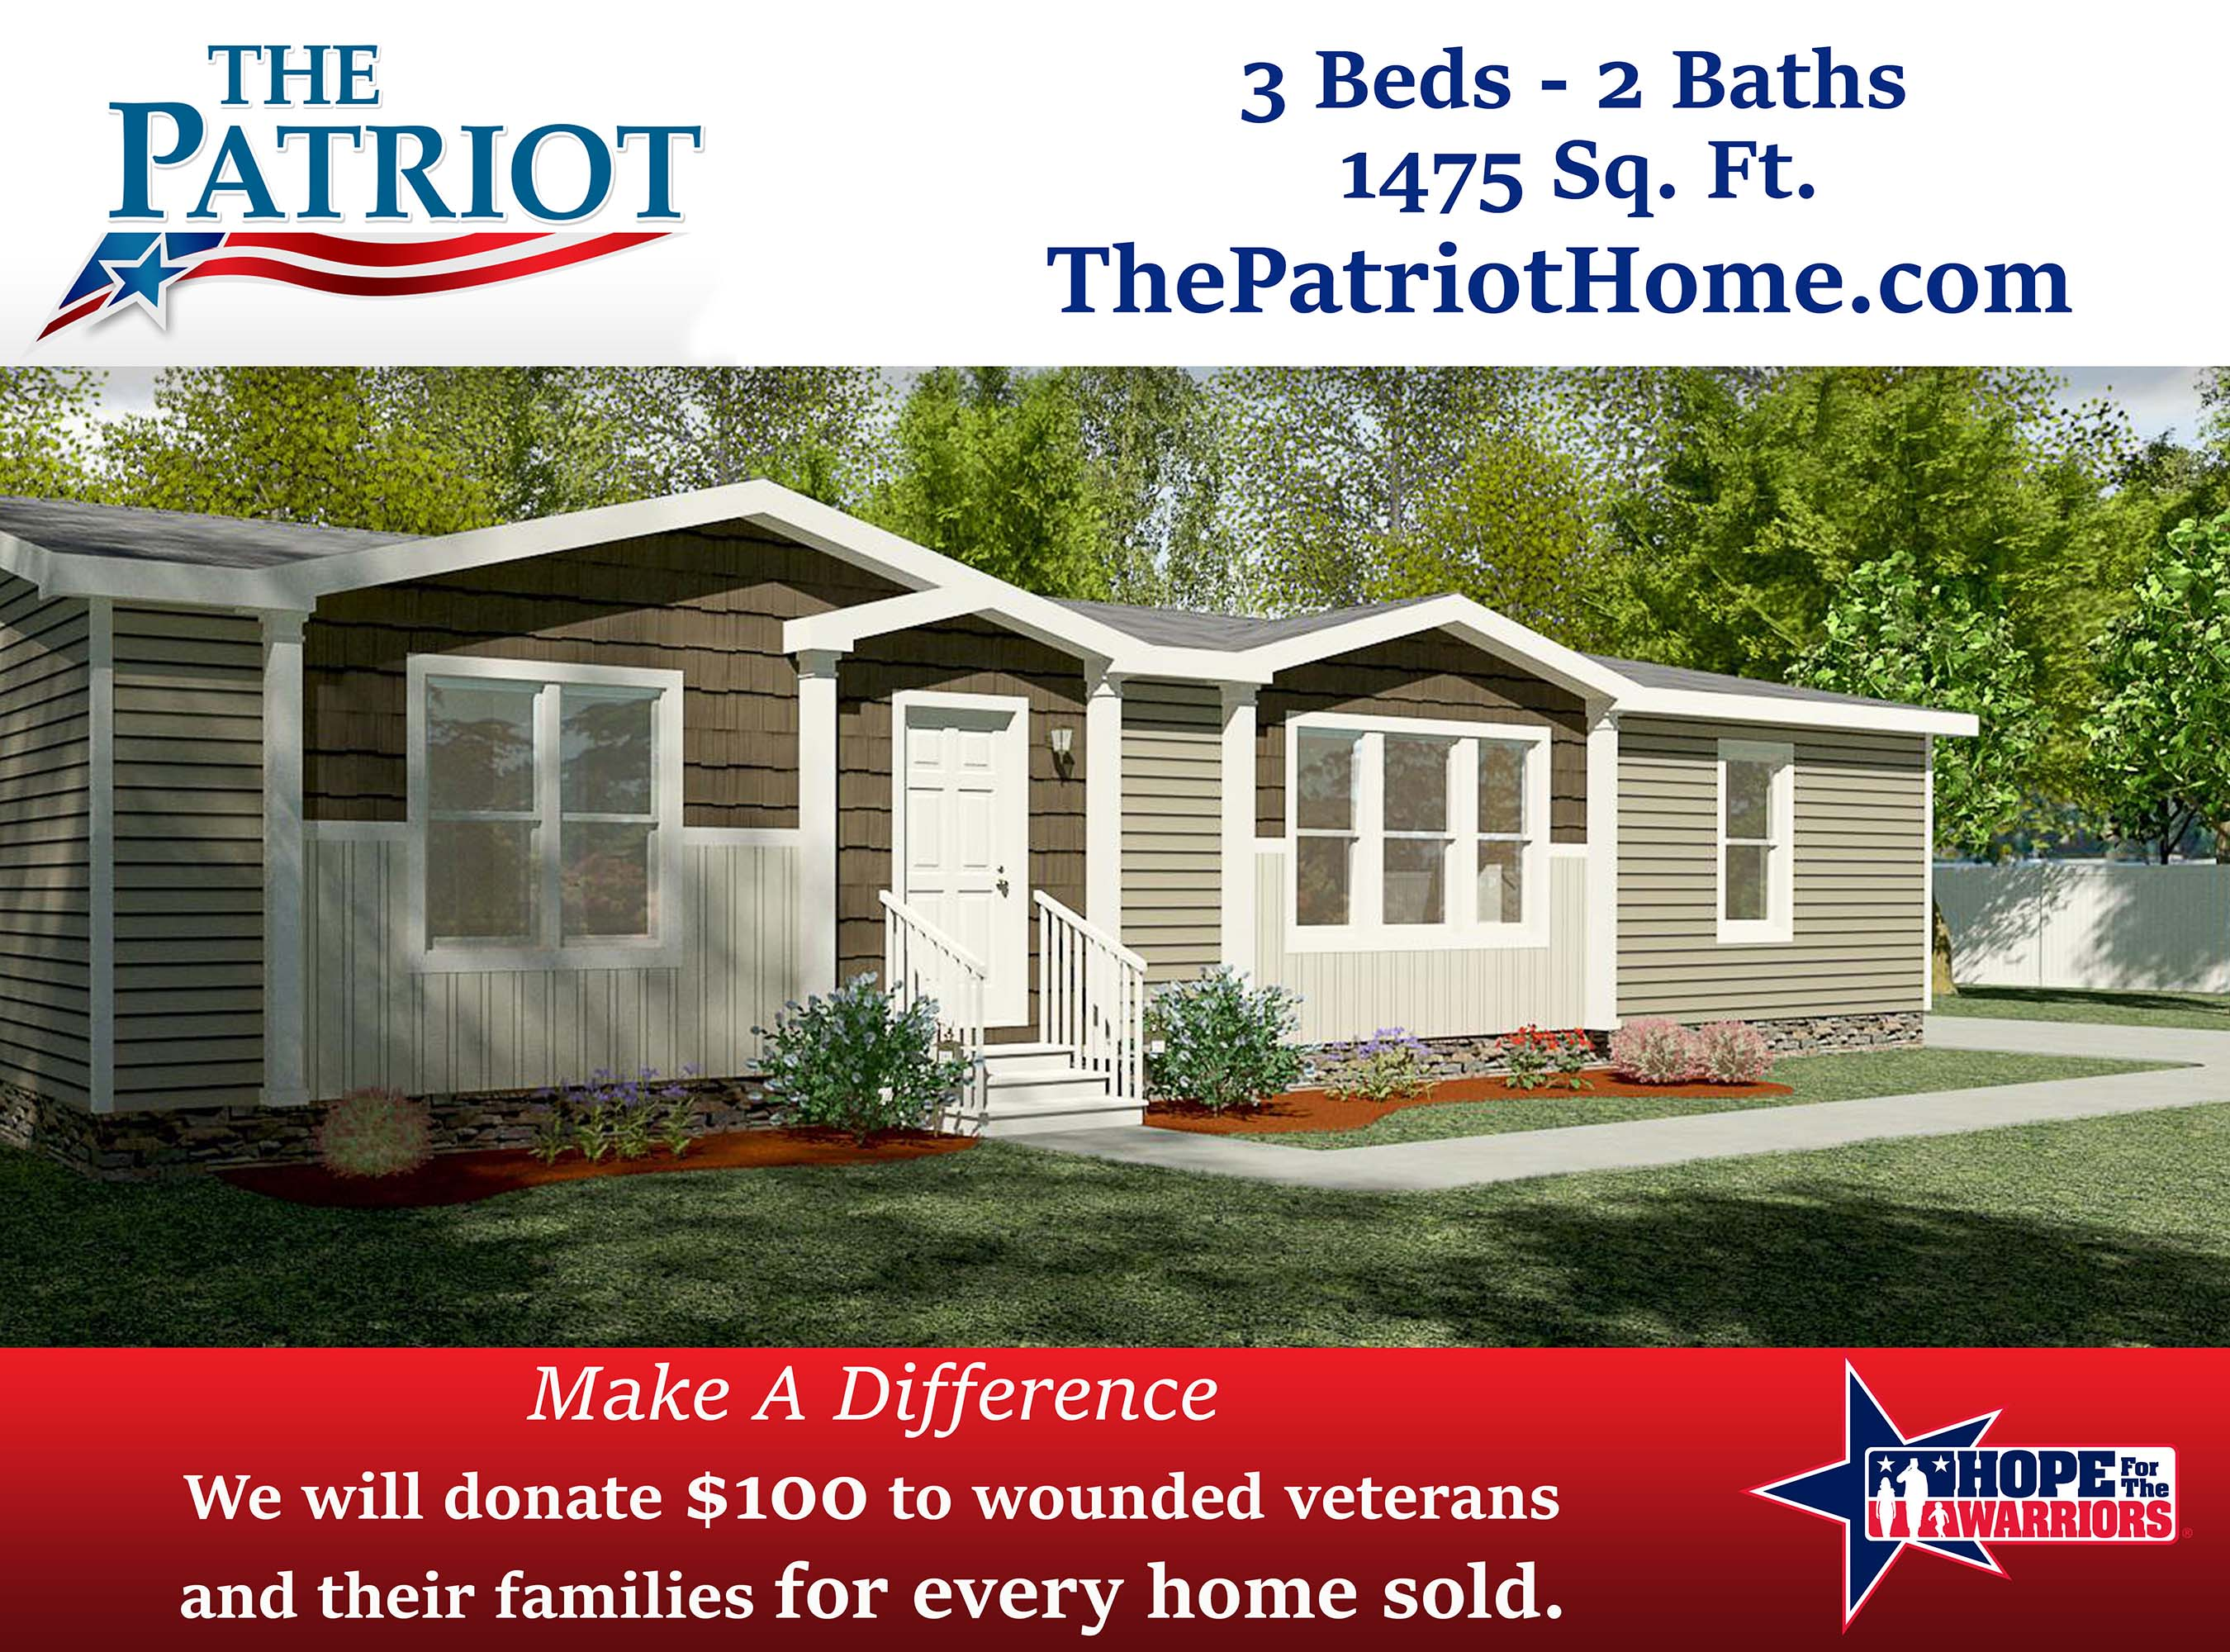 The Patriot Supports Veterans